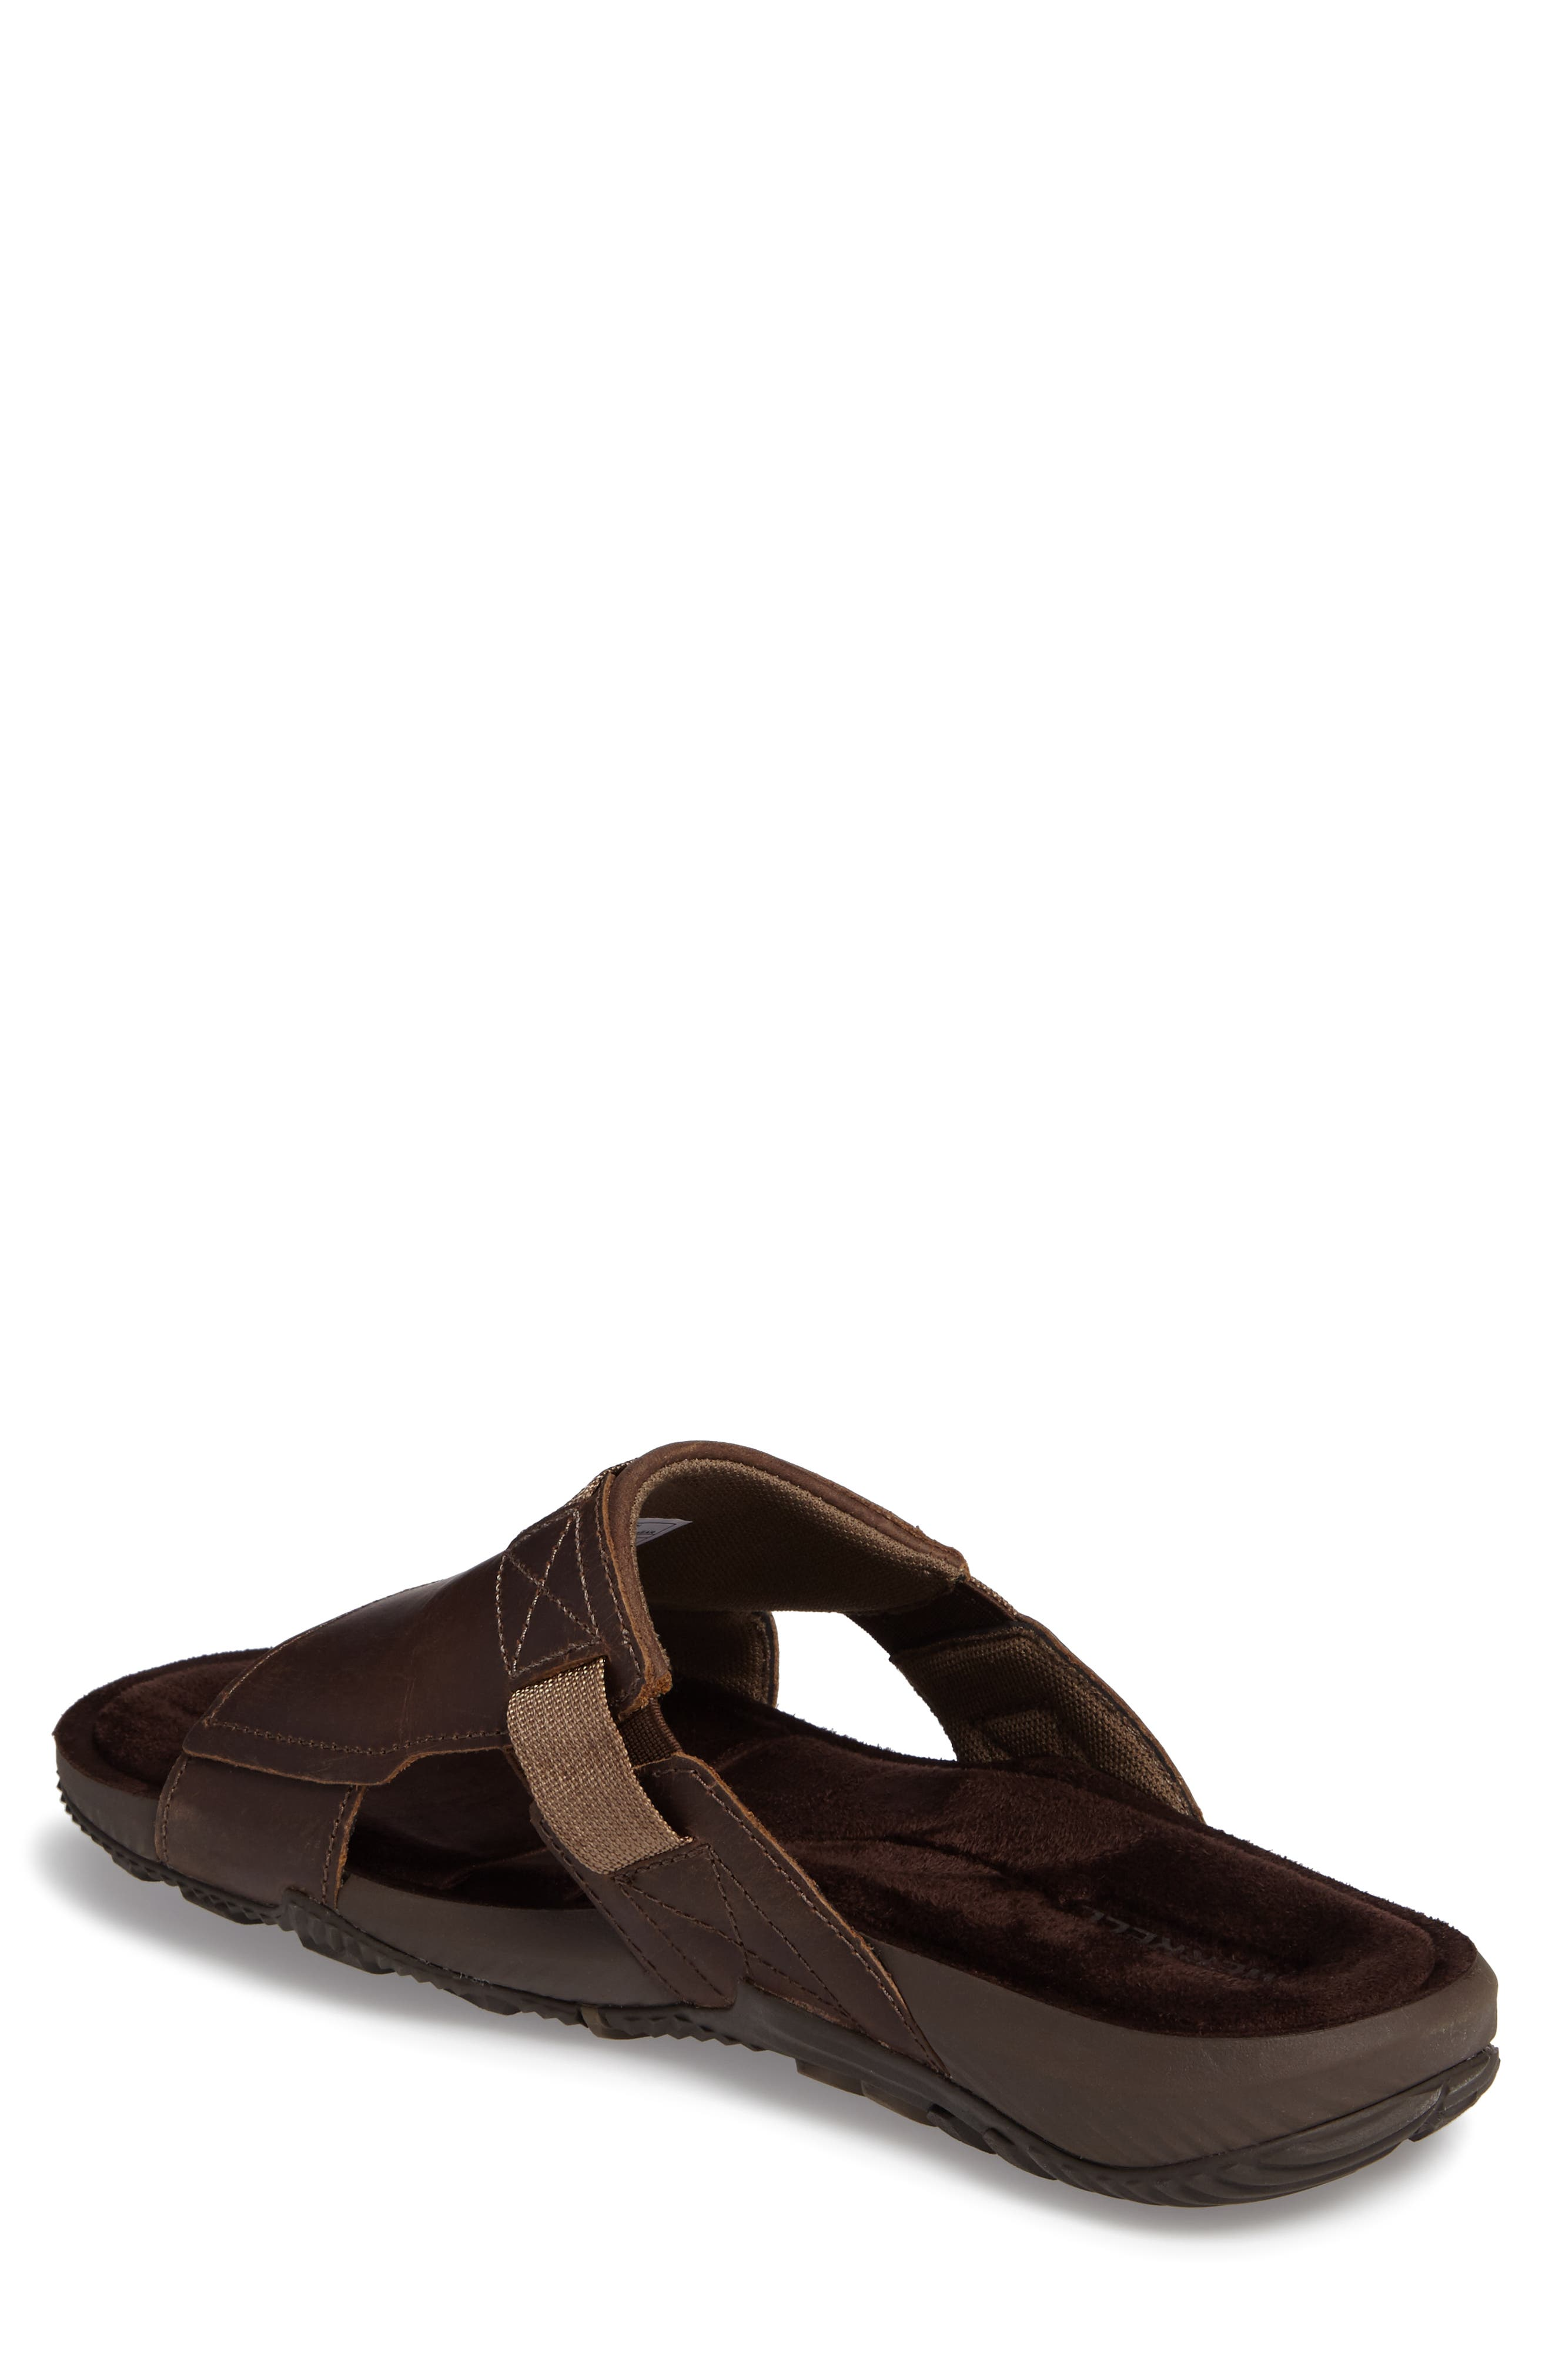 Terrant Slide Sandal,                             Alternate thumbnail 2, color,                             Dark Earth